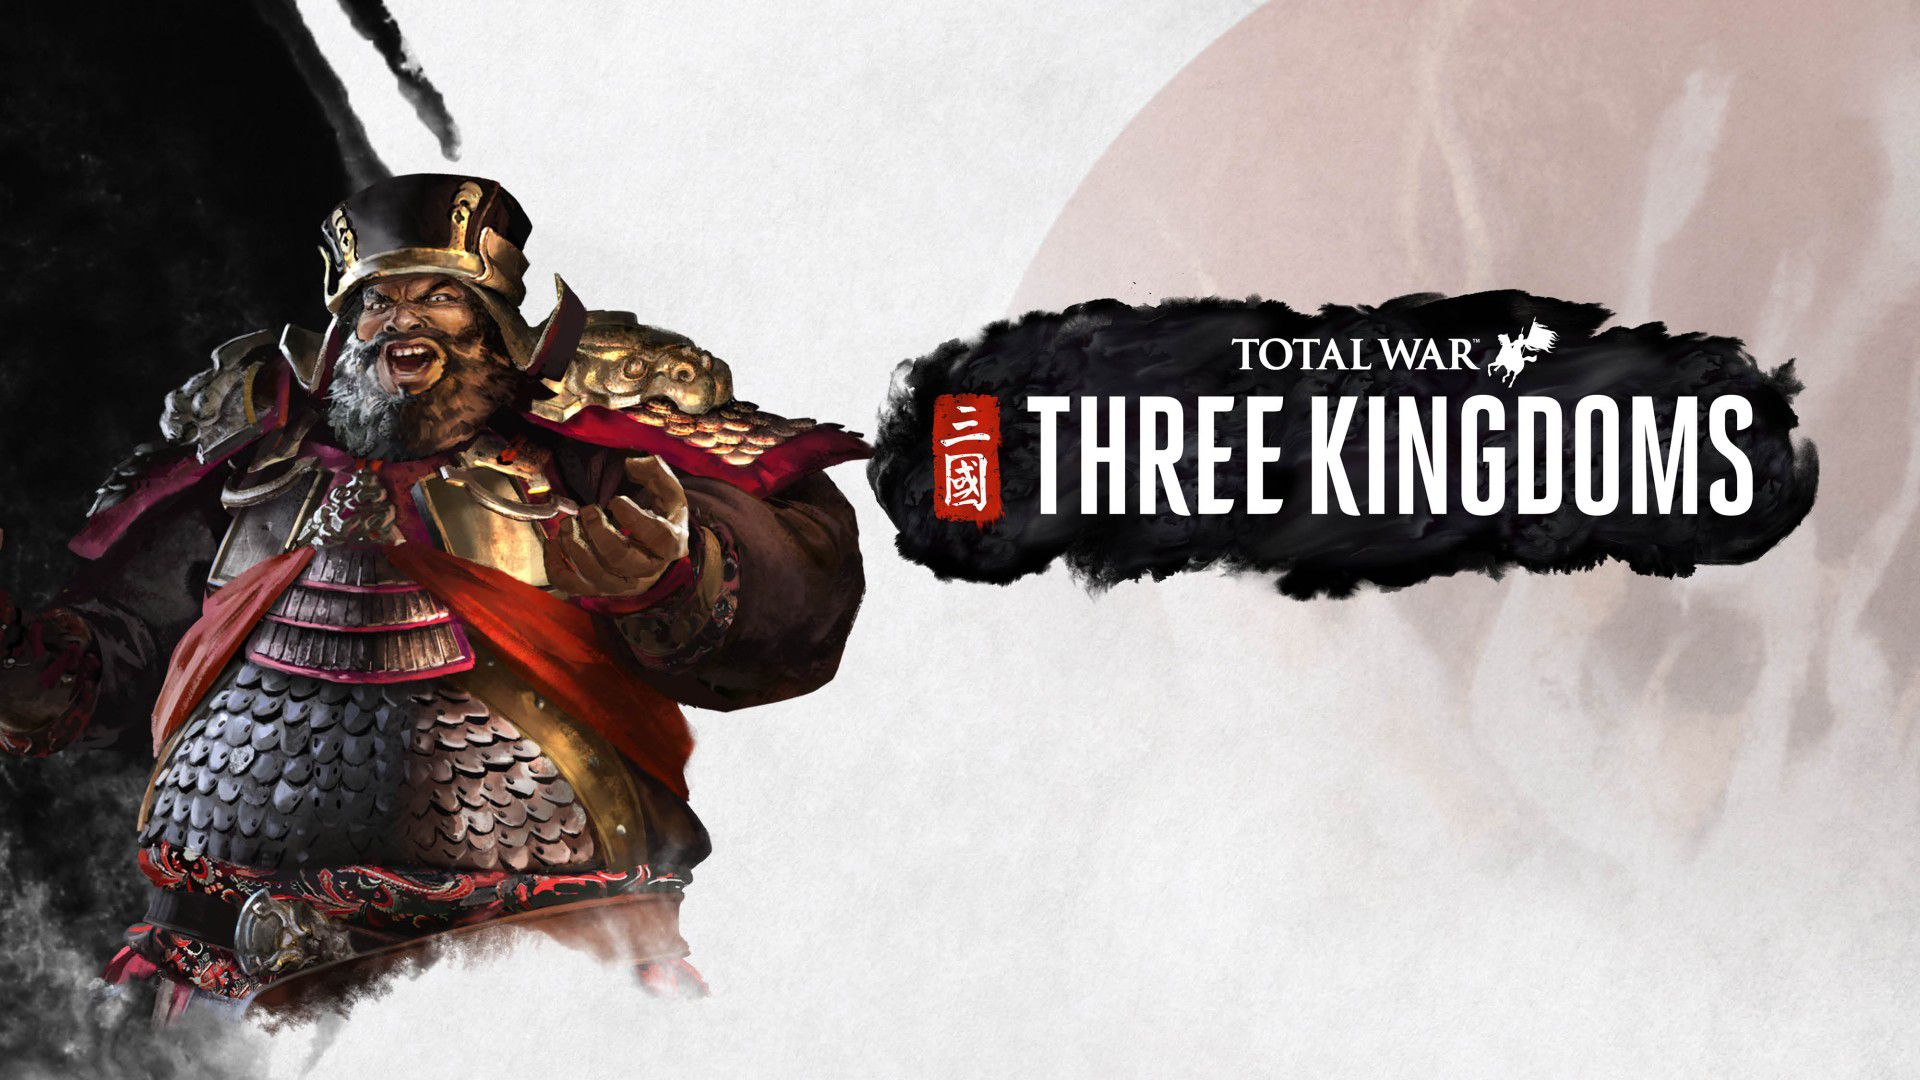 Nuovo appuntamento Live: alle 17.30 vi mostriamo Total War: Three Kingdoms